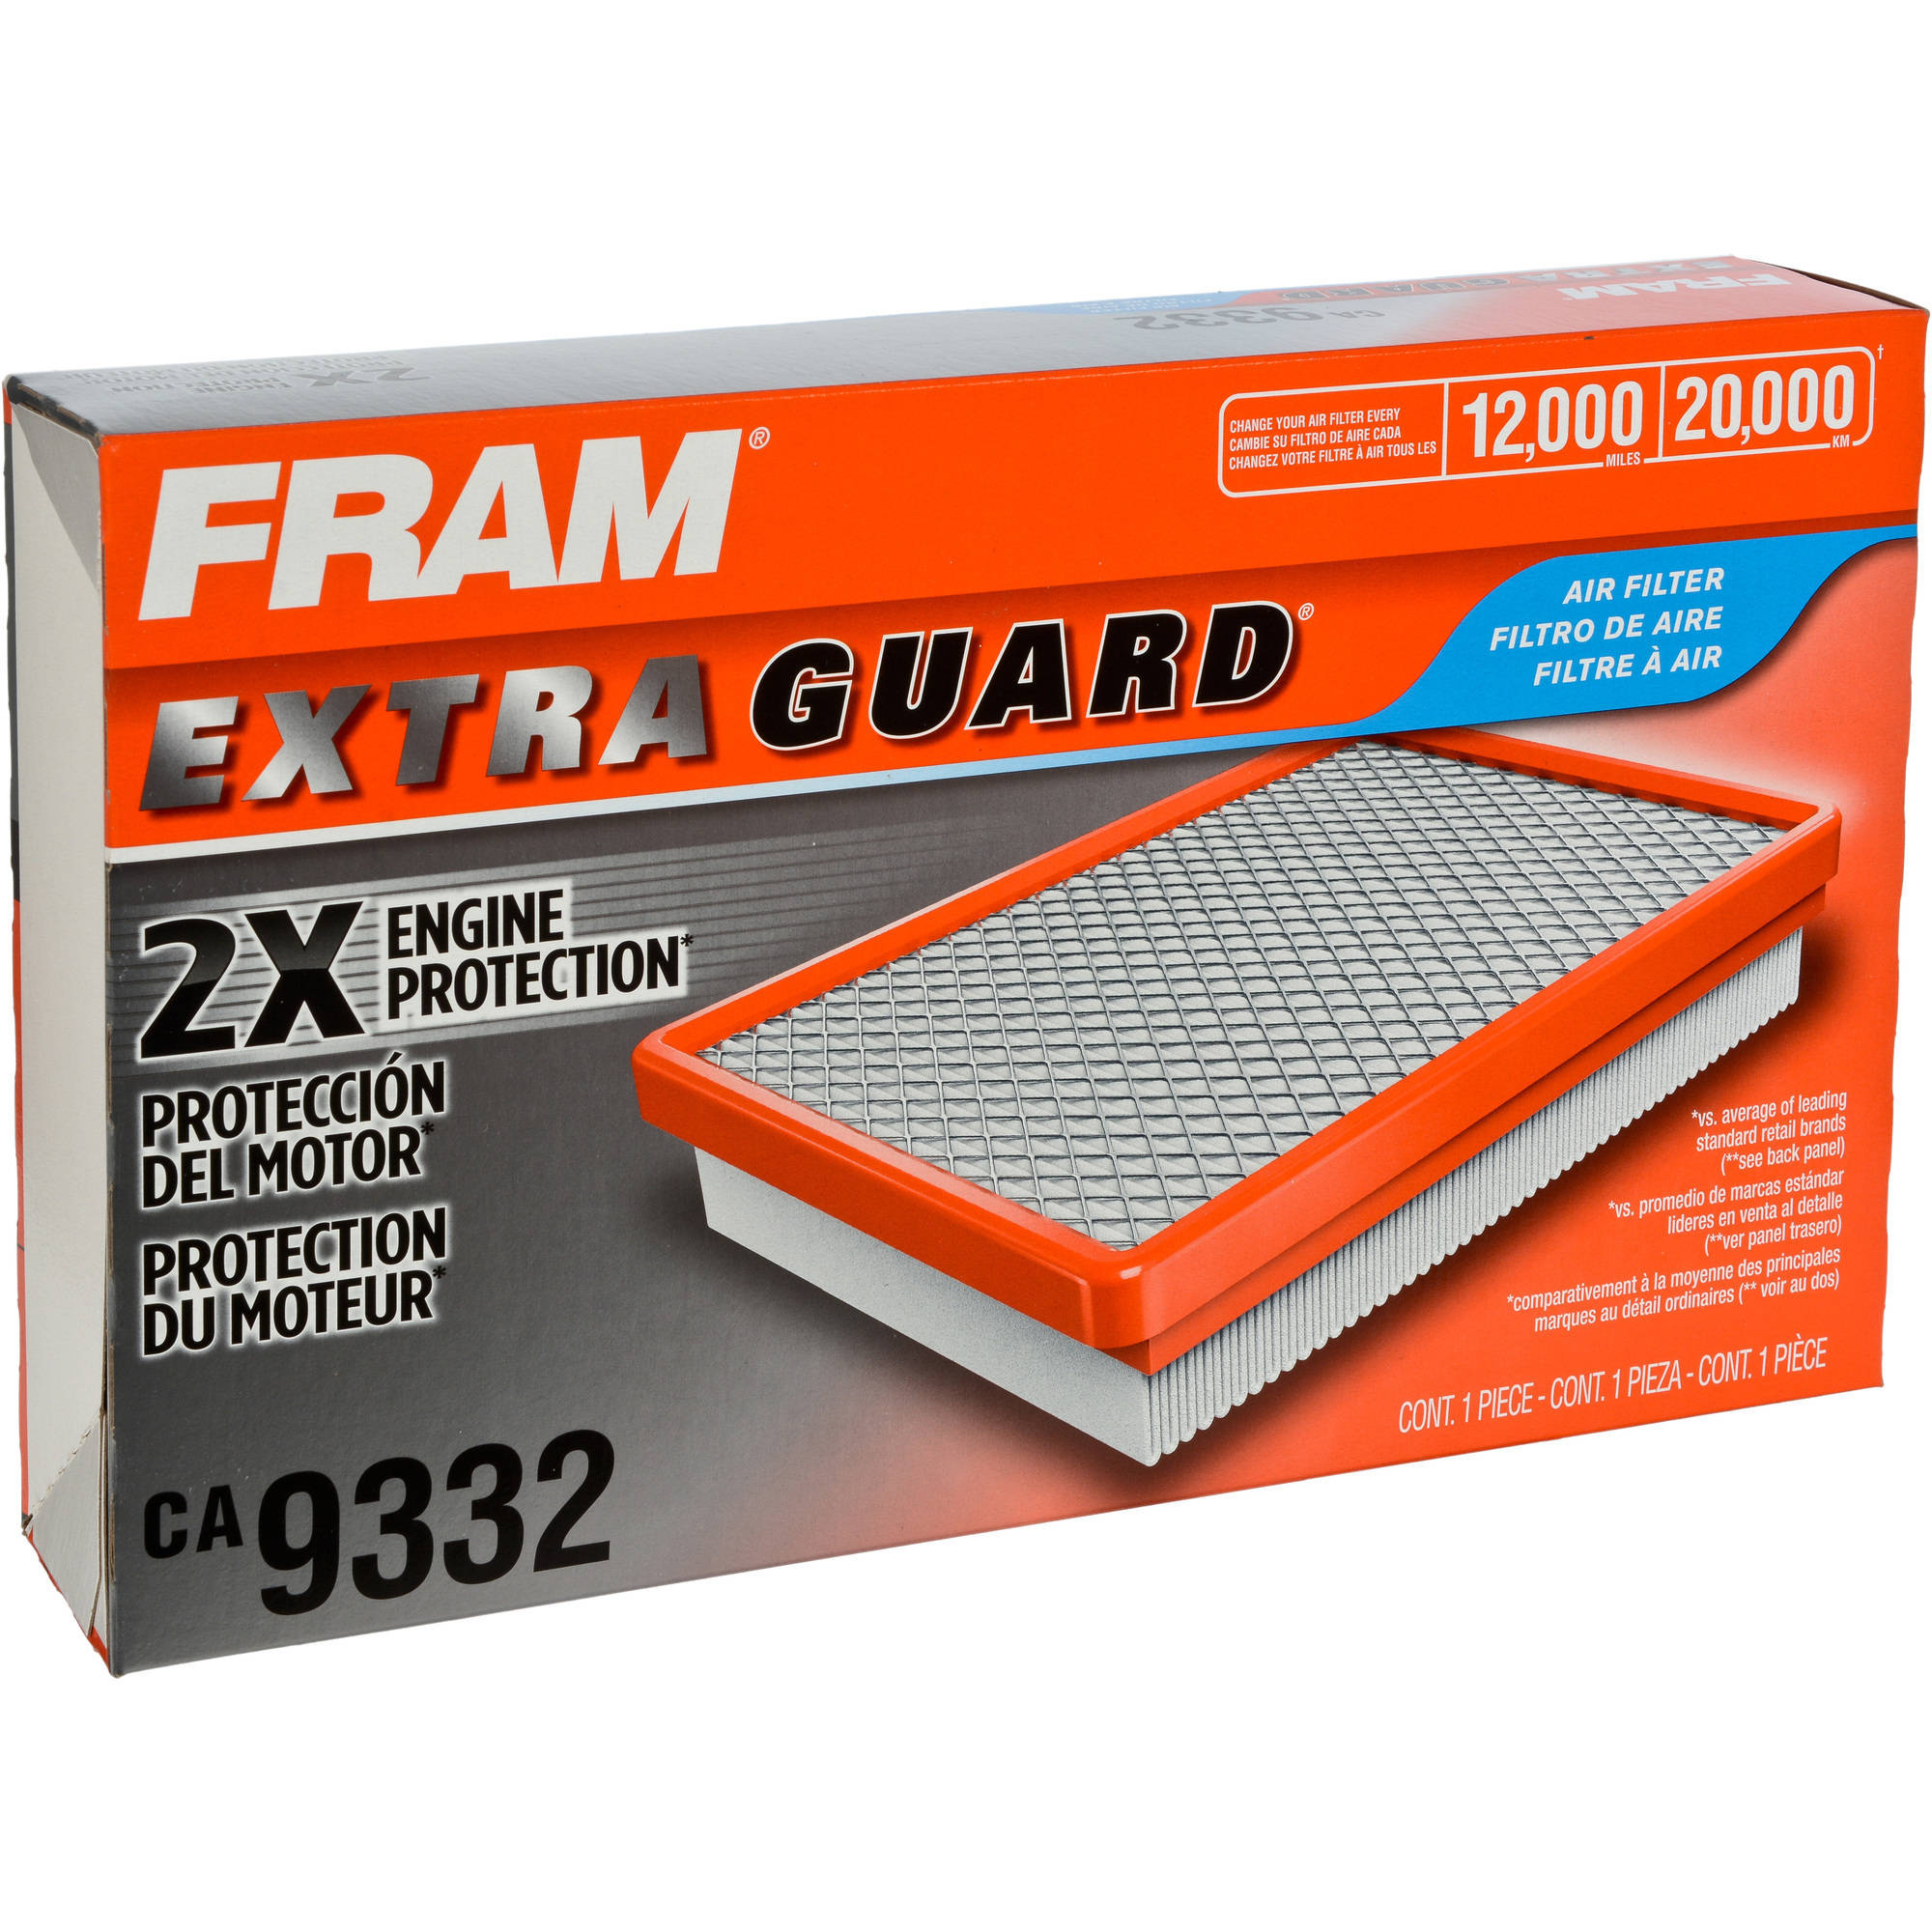 FRAM Extra Guard Air Filter, CA9332